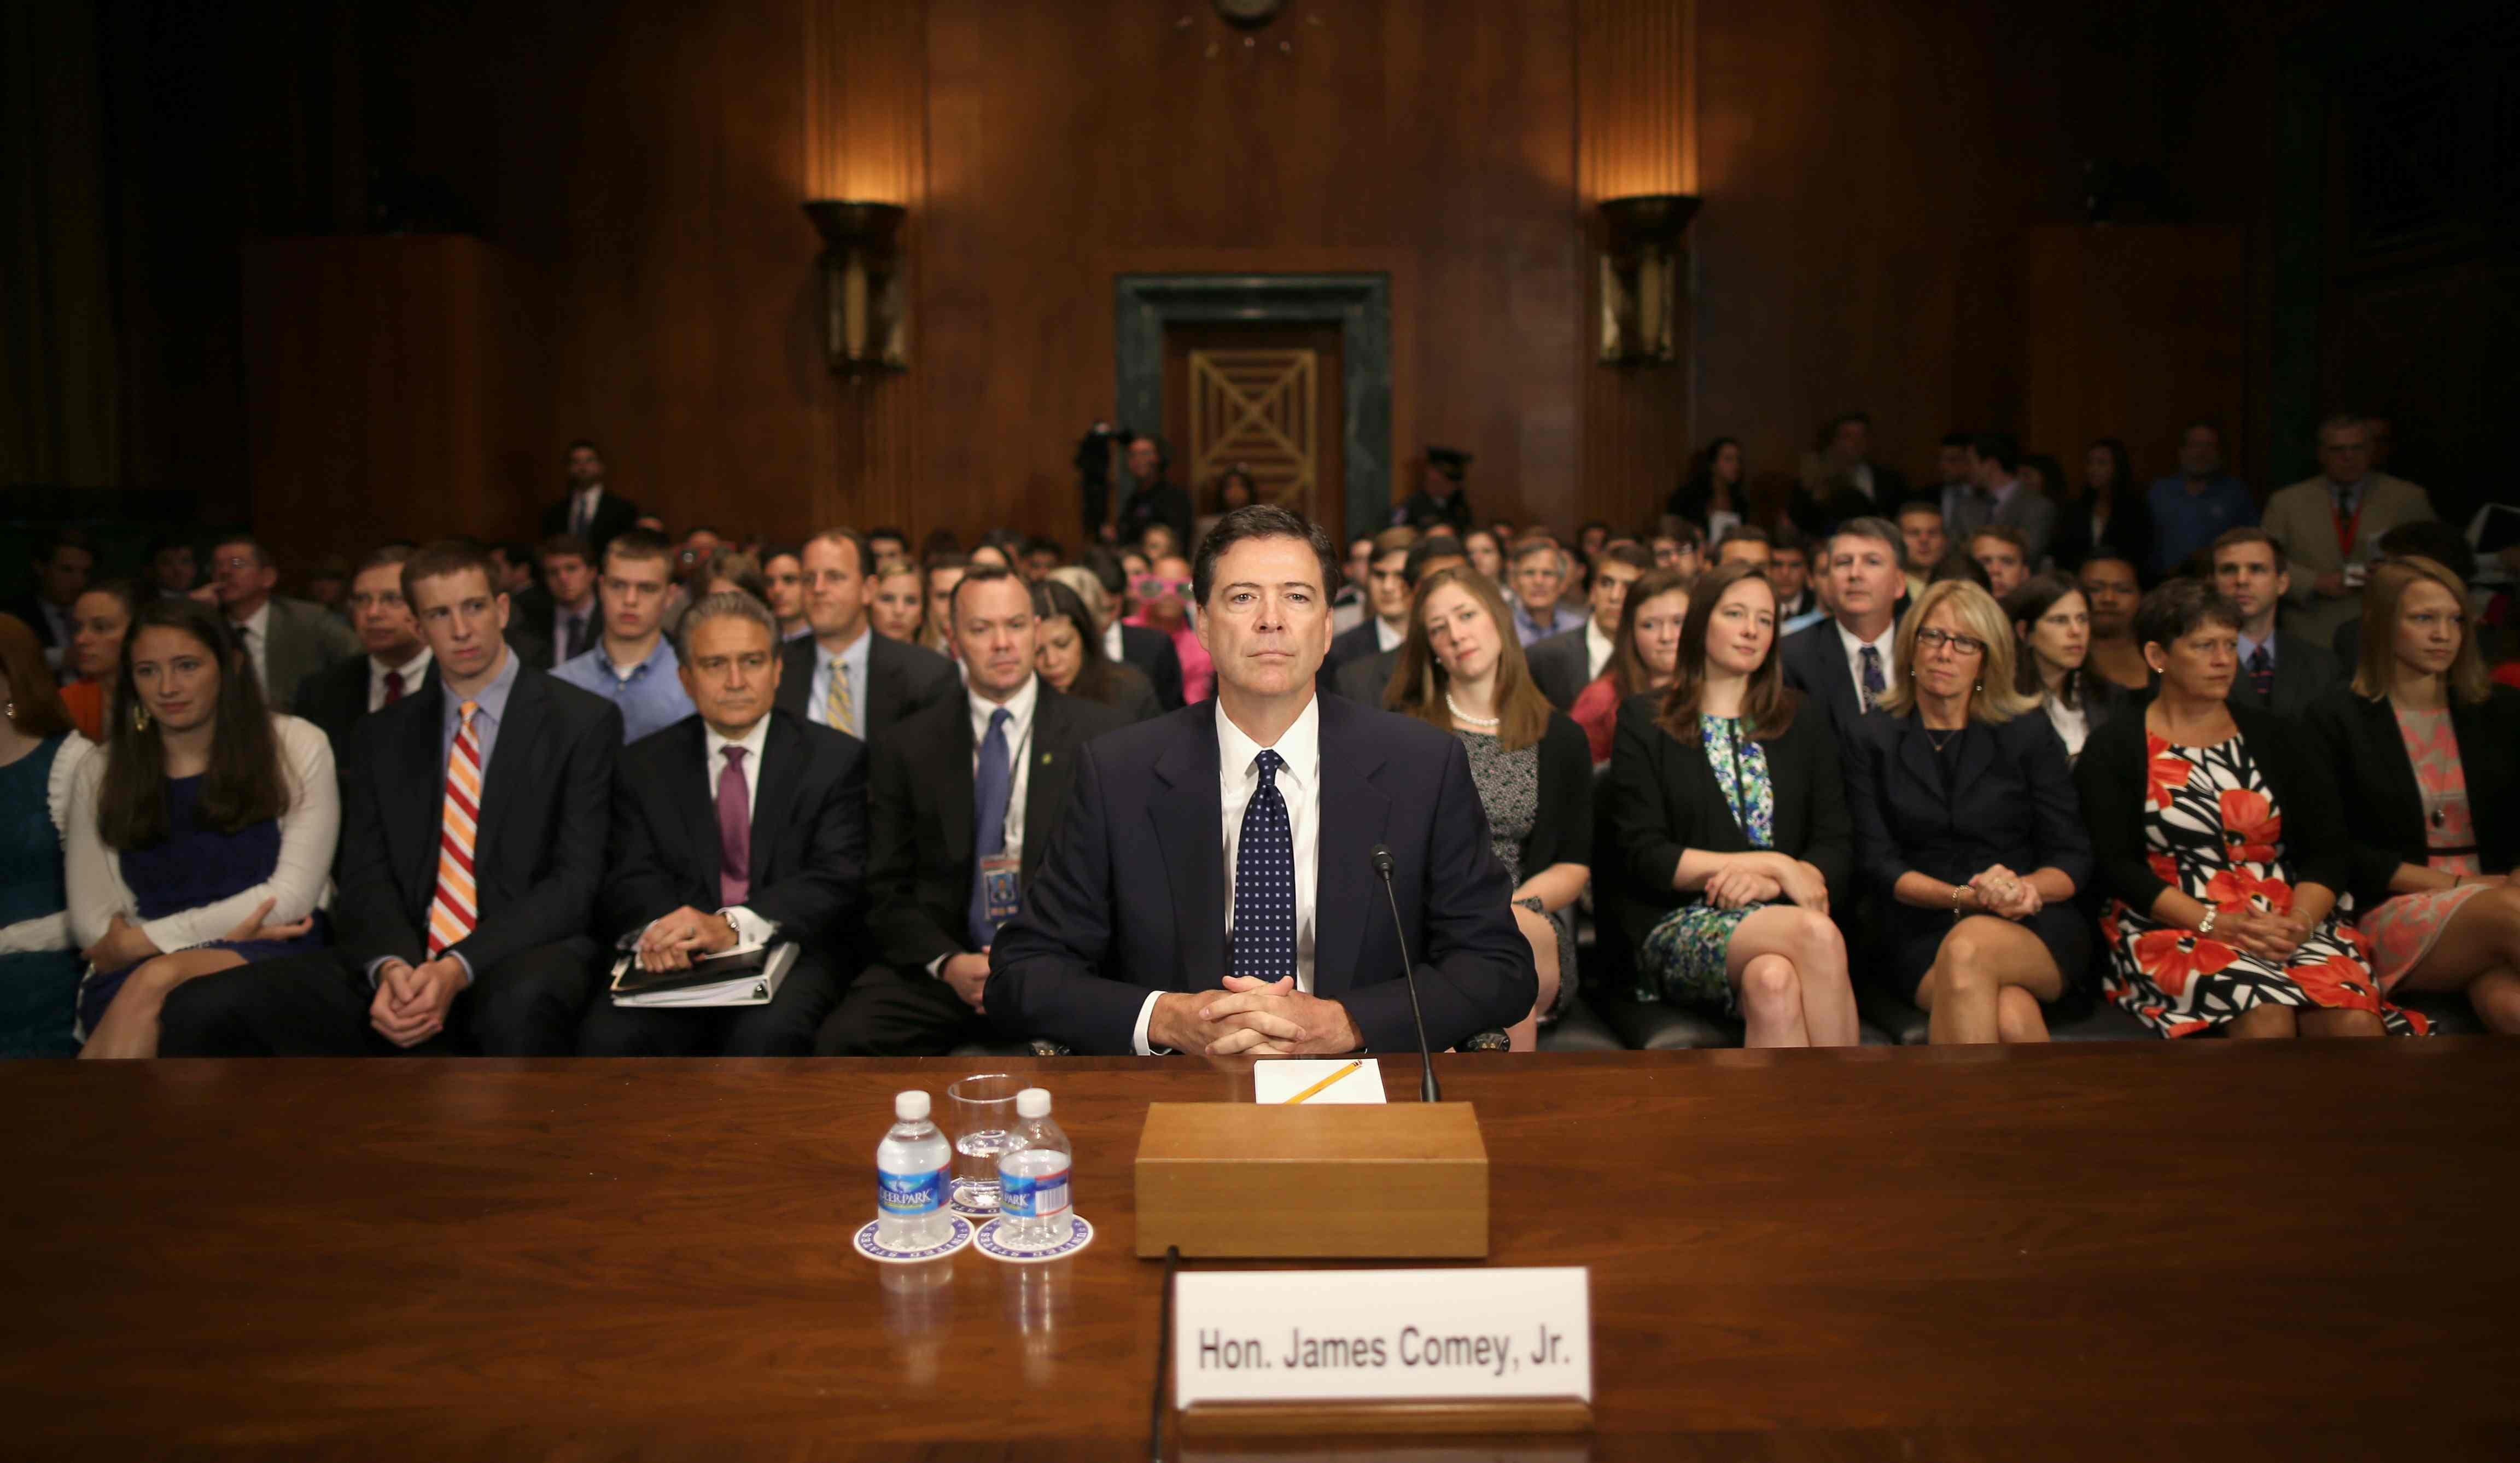 James Comey prepares for his Senate Judiciary Committee confirmation hearing in July on Capitol Hill. He was confirmed as the new FBI director this week.